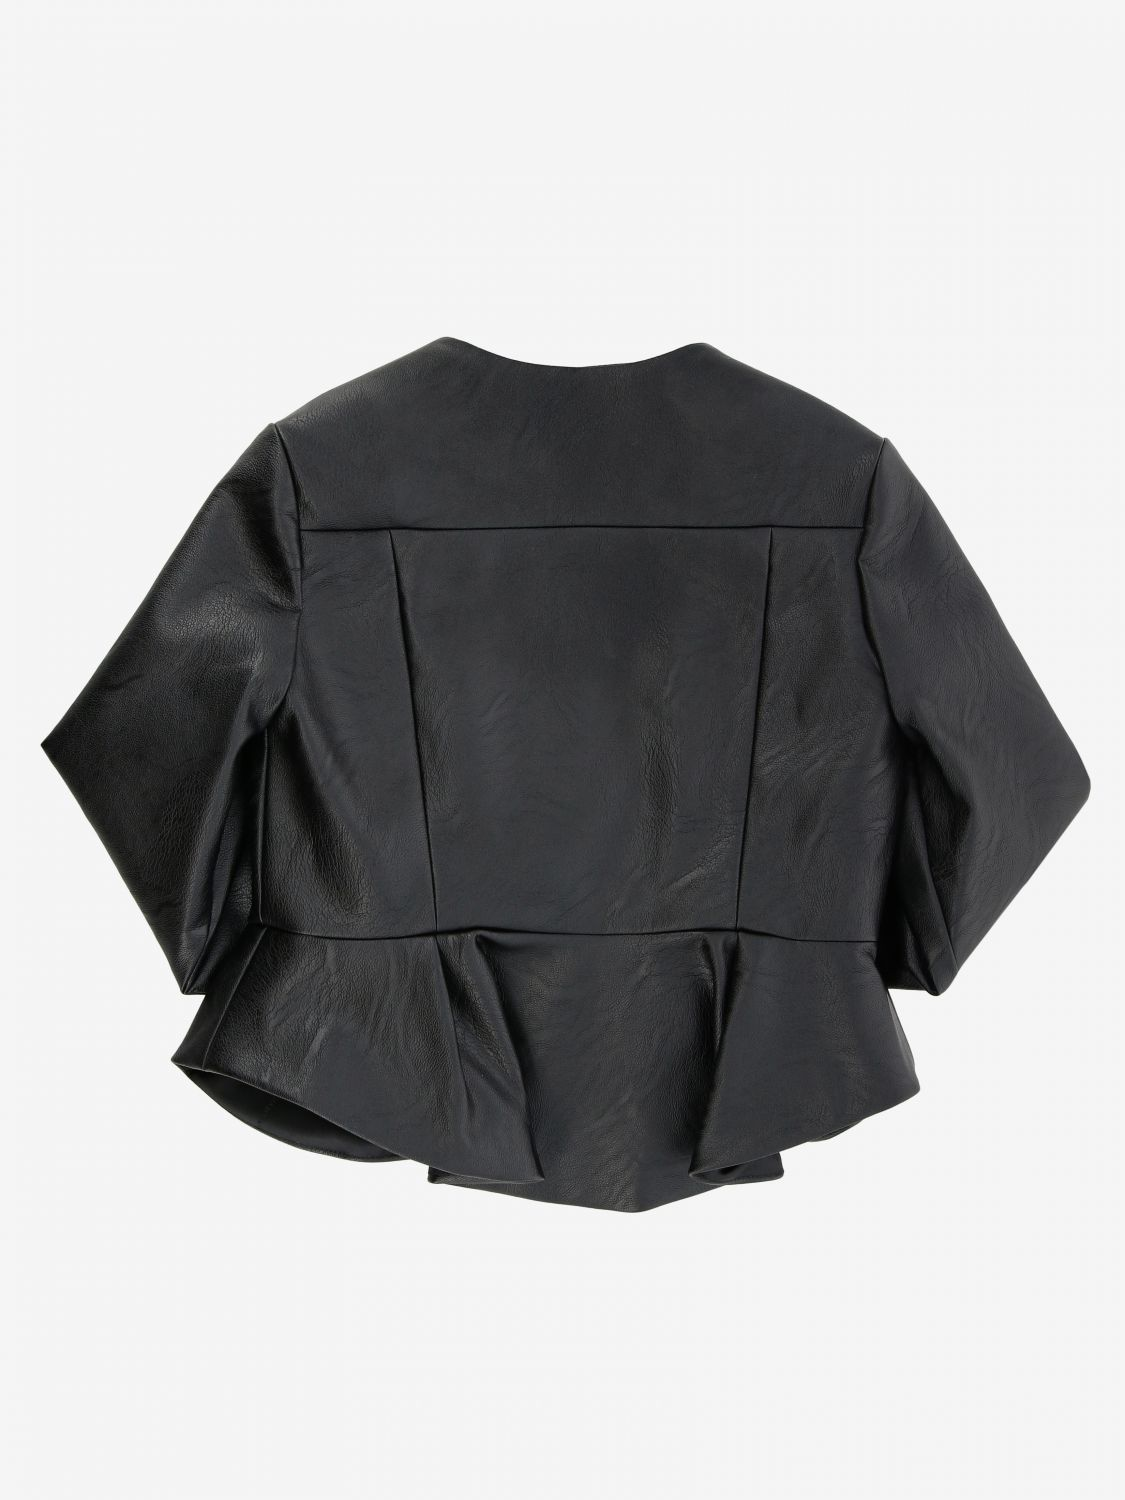 Elisabetta franchi jacket in synthetic leather with logo black 2